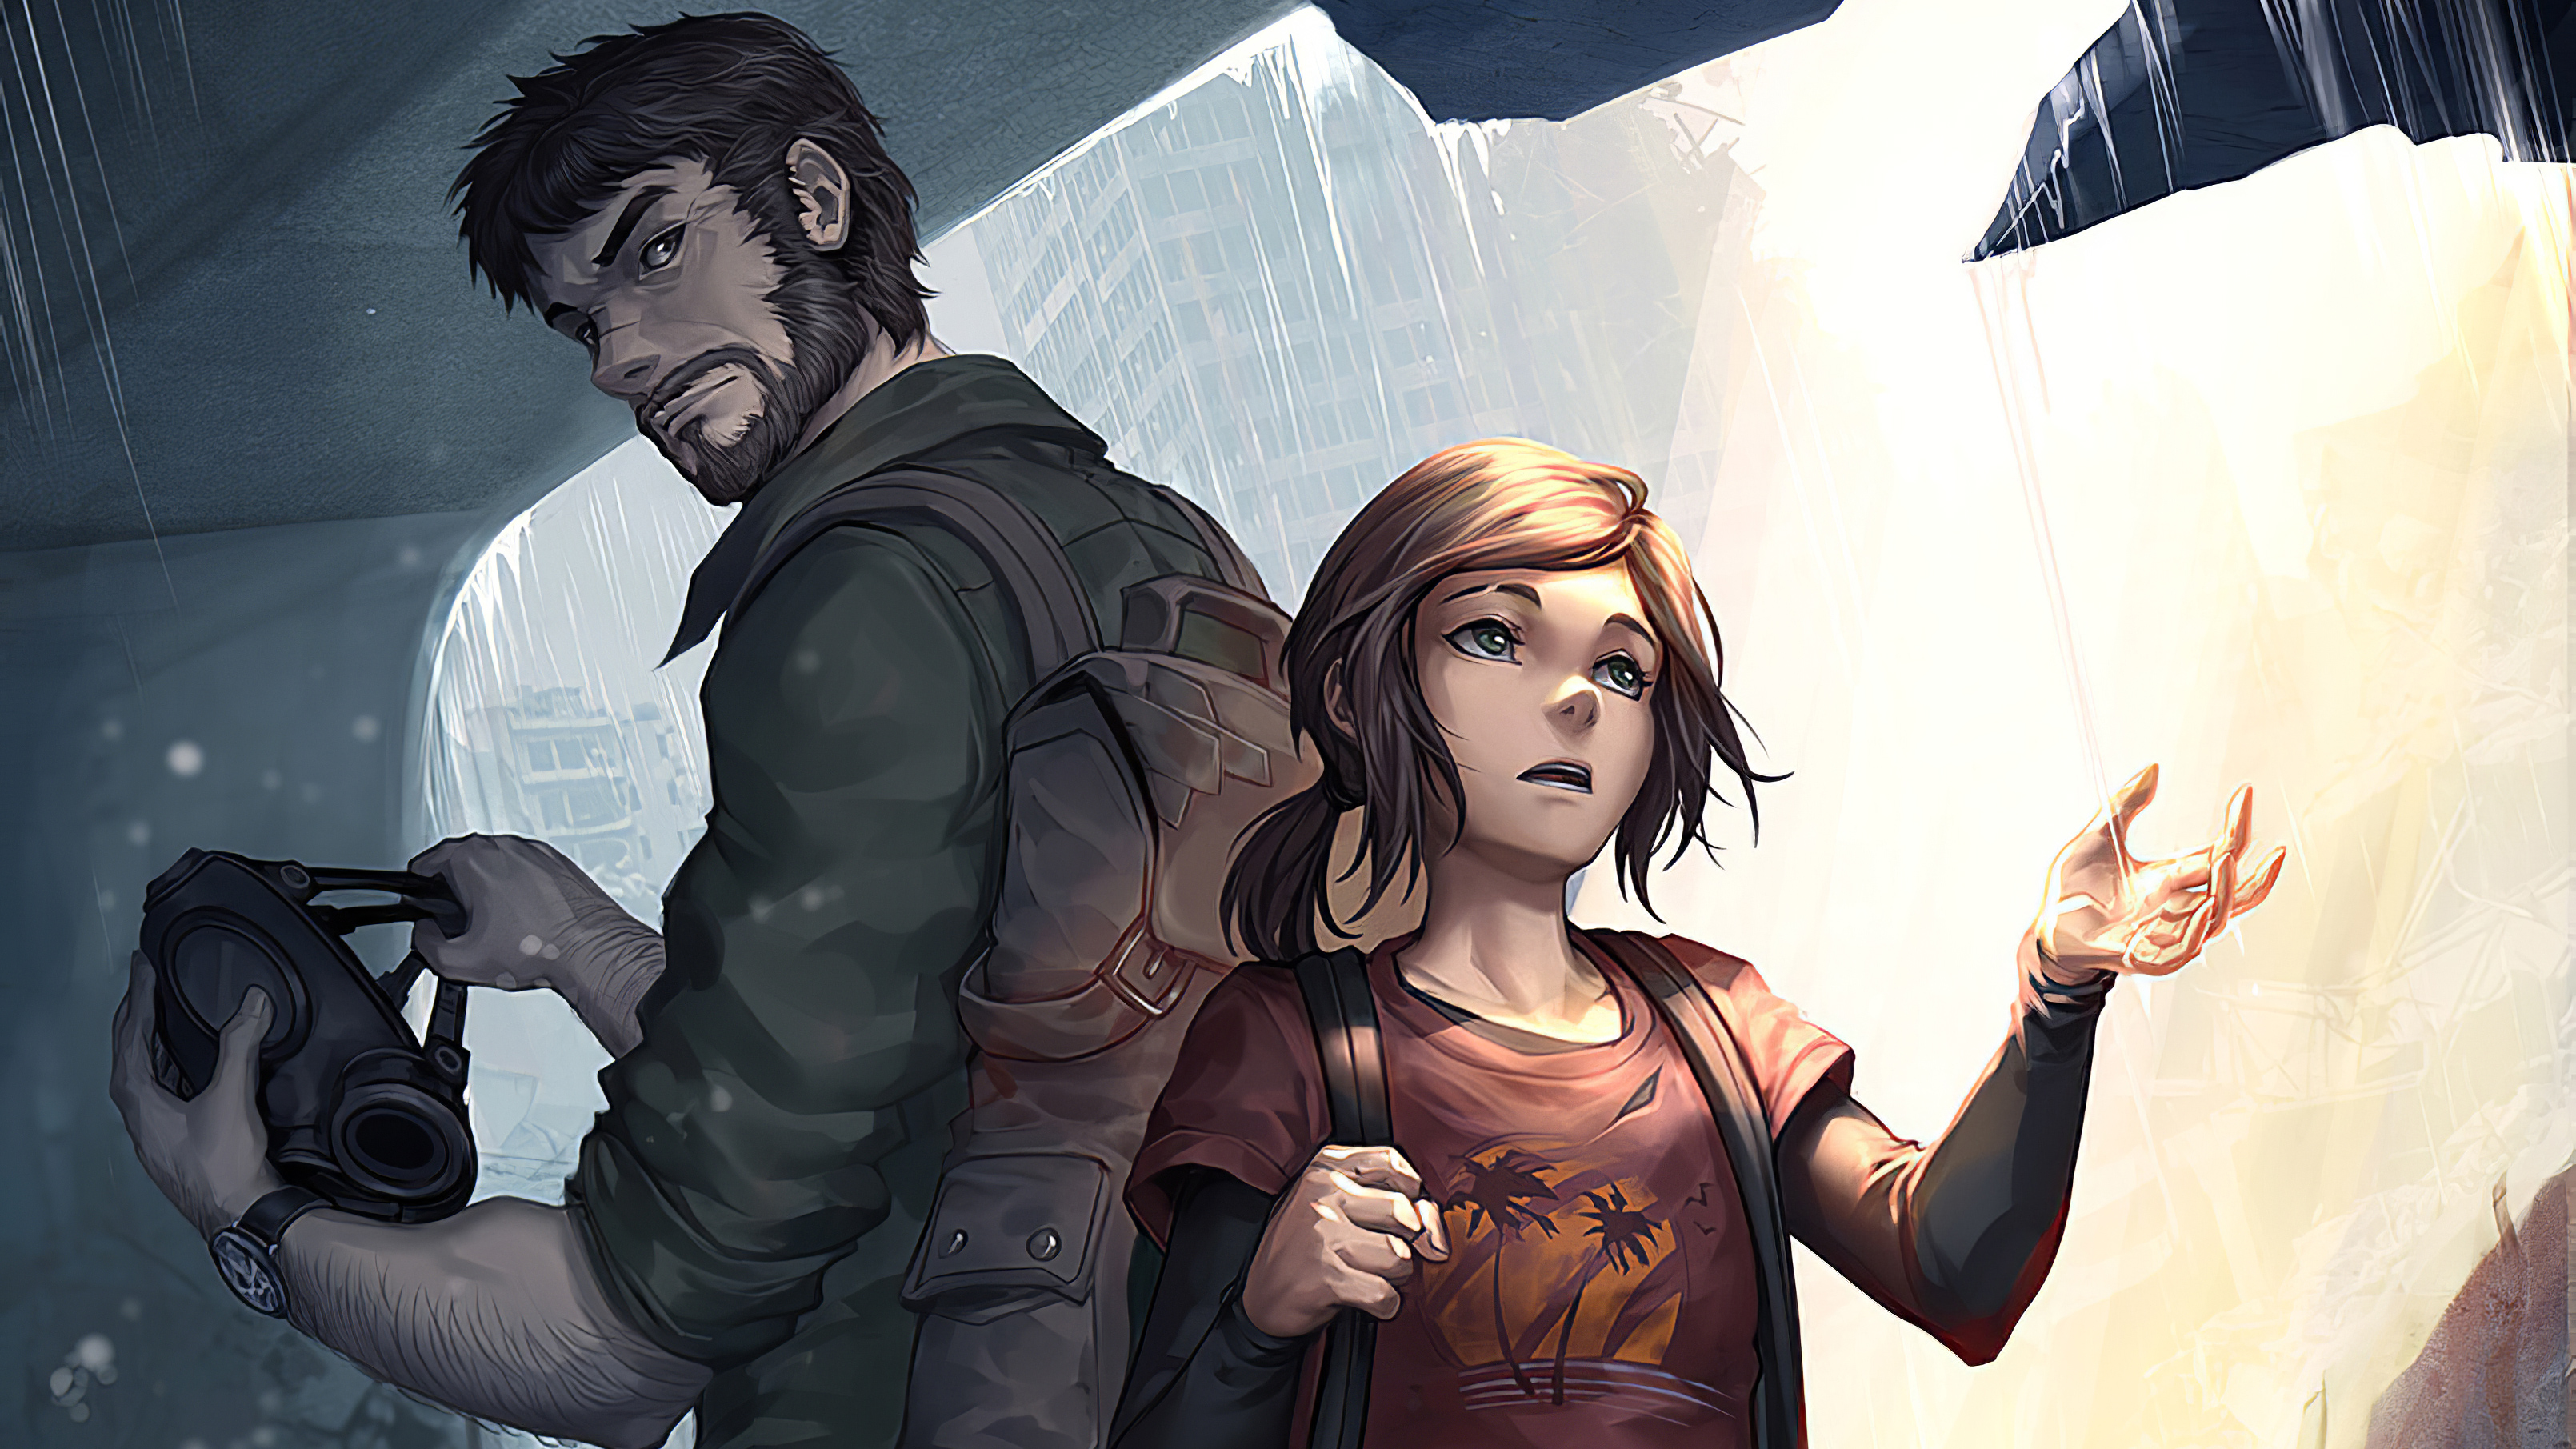 Wallpaper Of Ellie Joel The Last Of Us Part Ii Background Hd Image